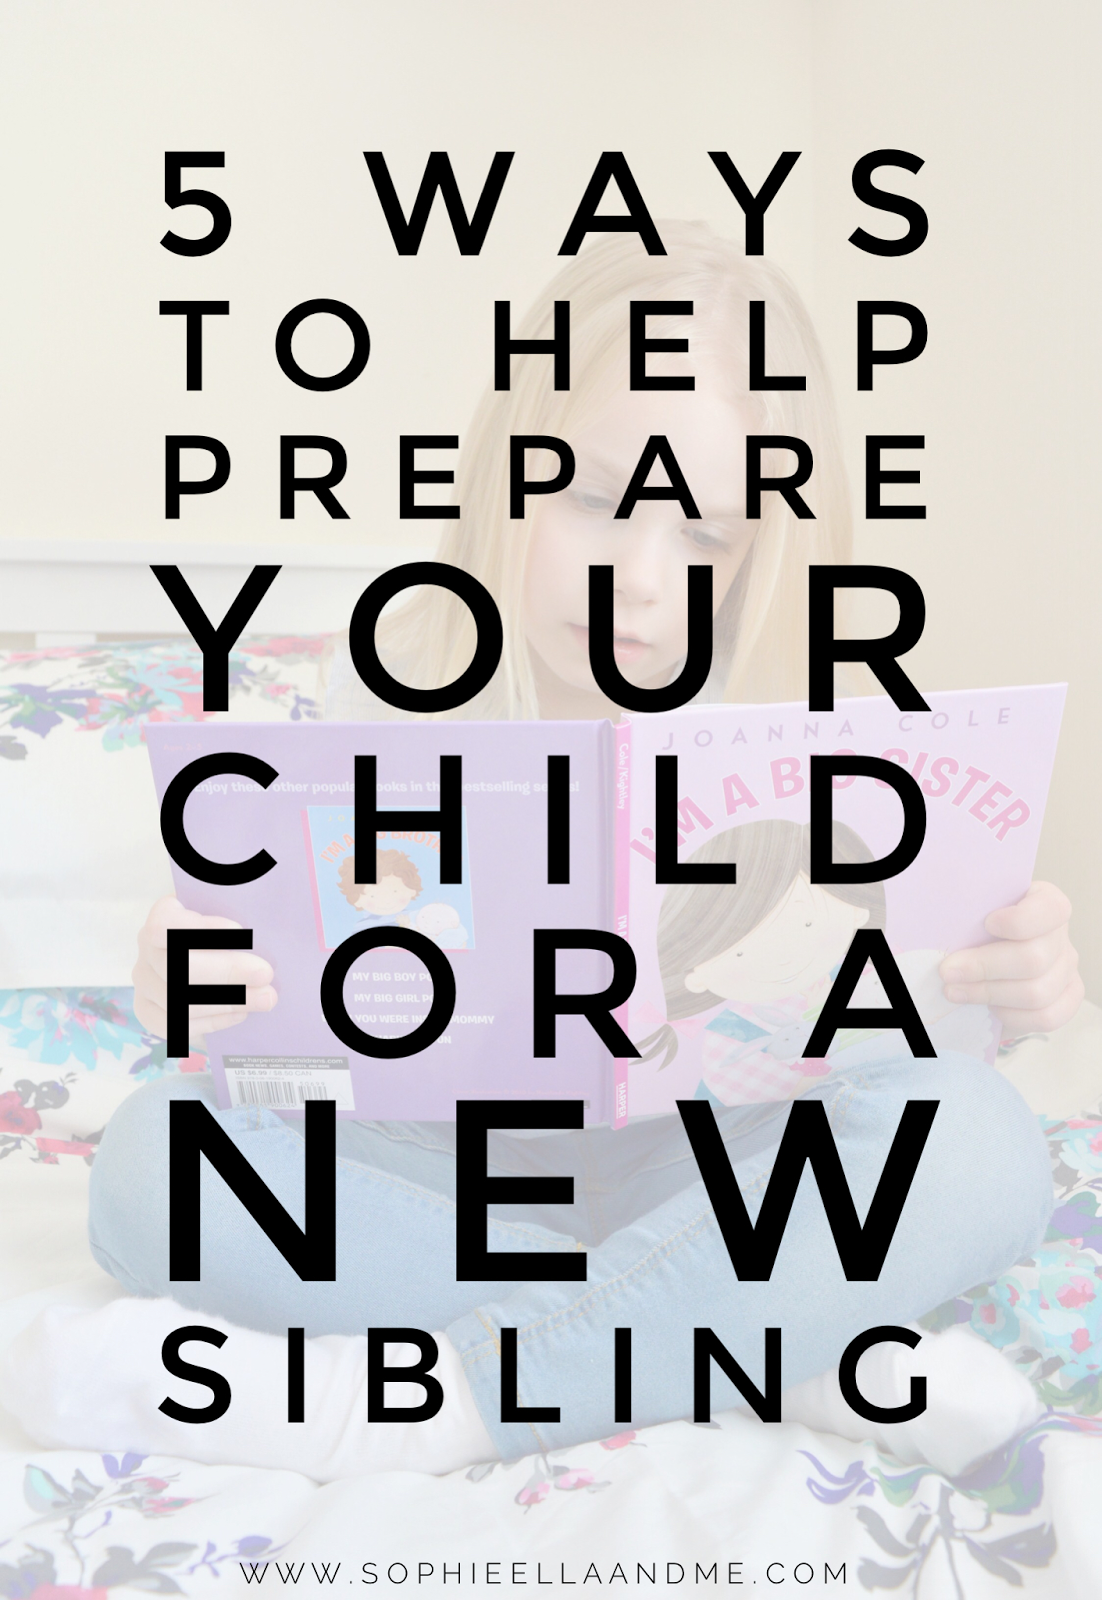 5 Ways To Help Prepare Your Child For A New Sibling